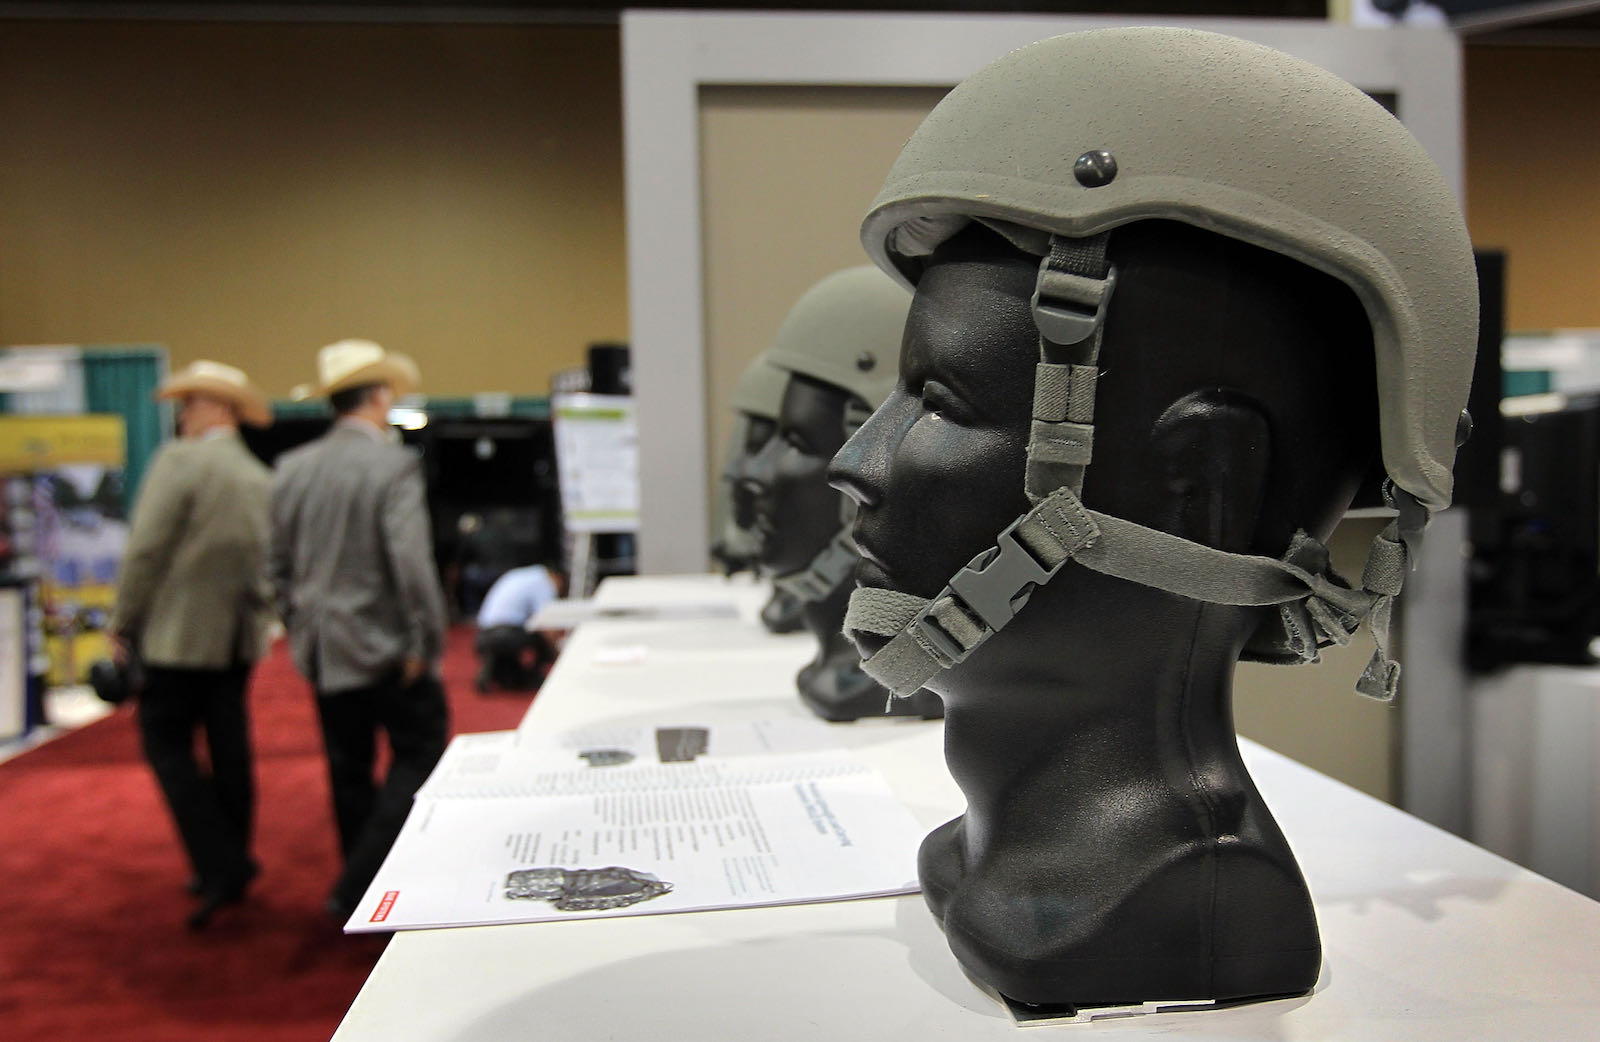 A display at the Border Security Expo